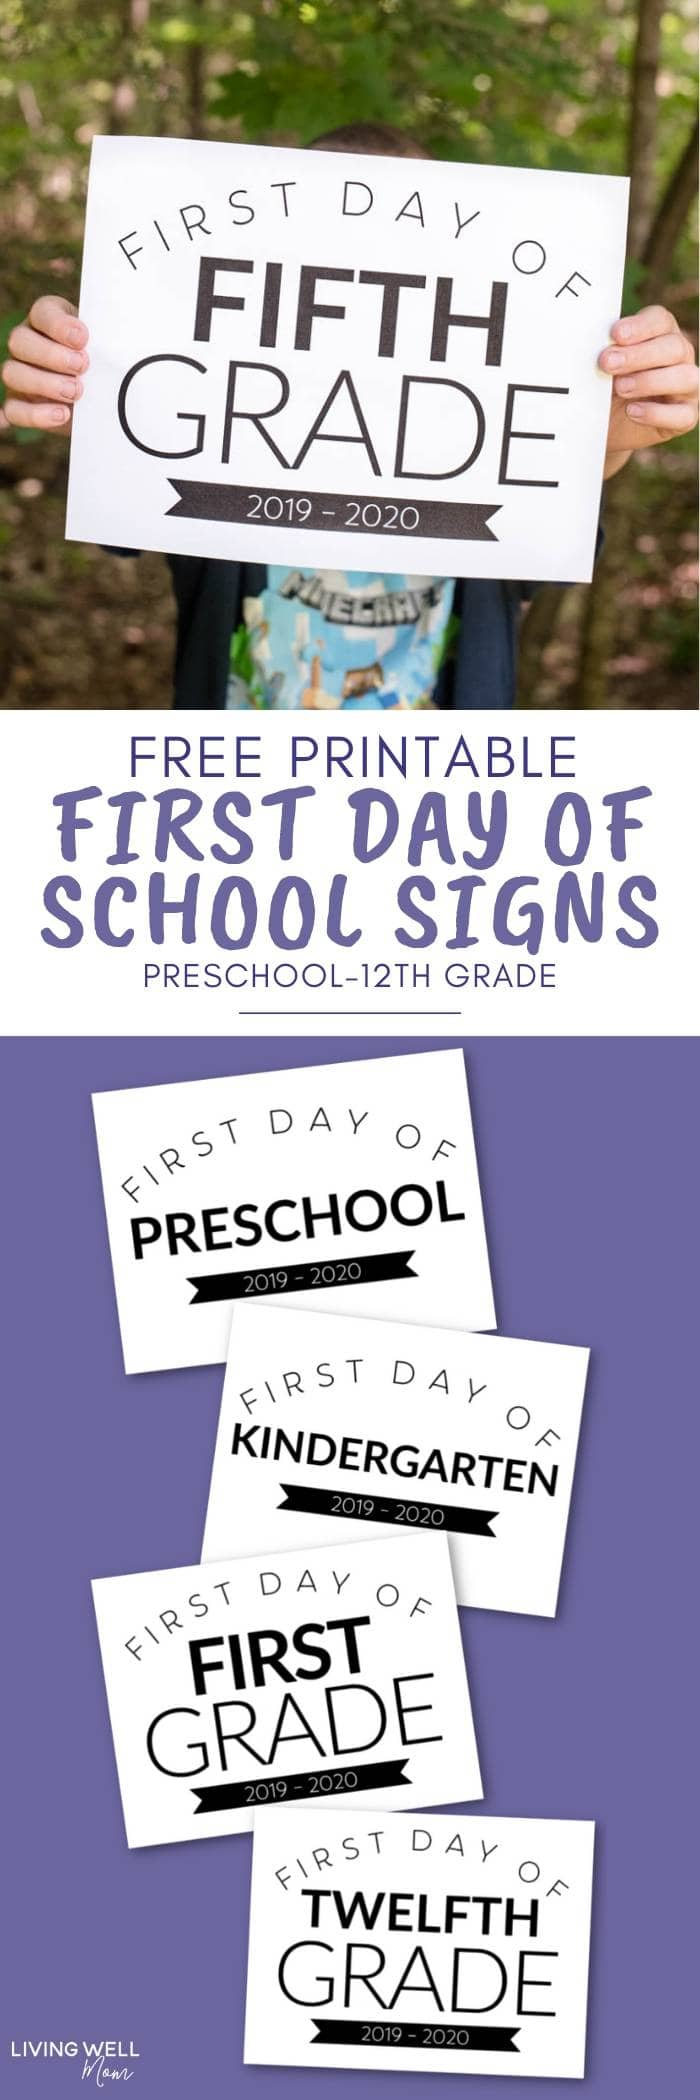 free printable first day of school signs all grades